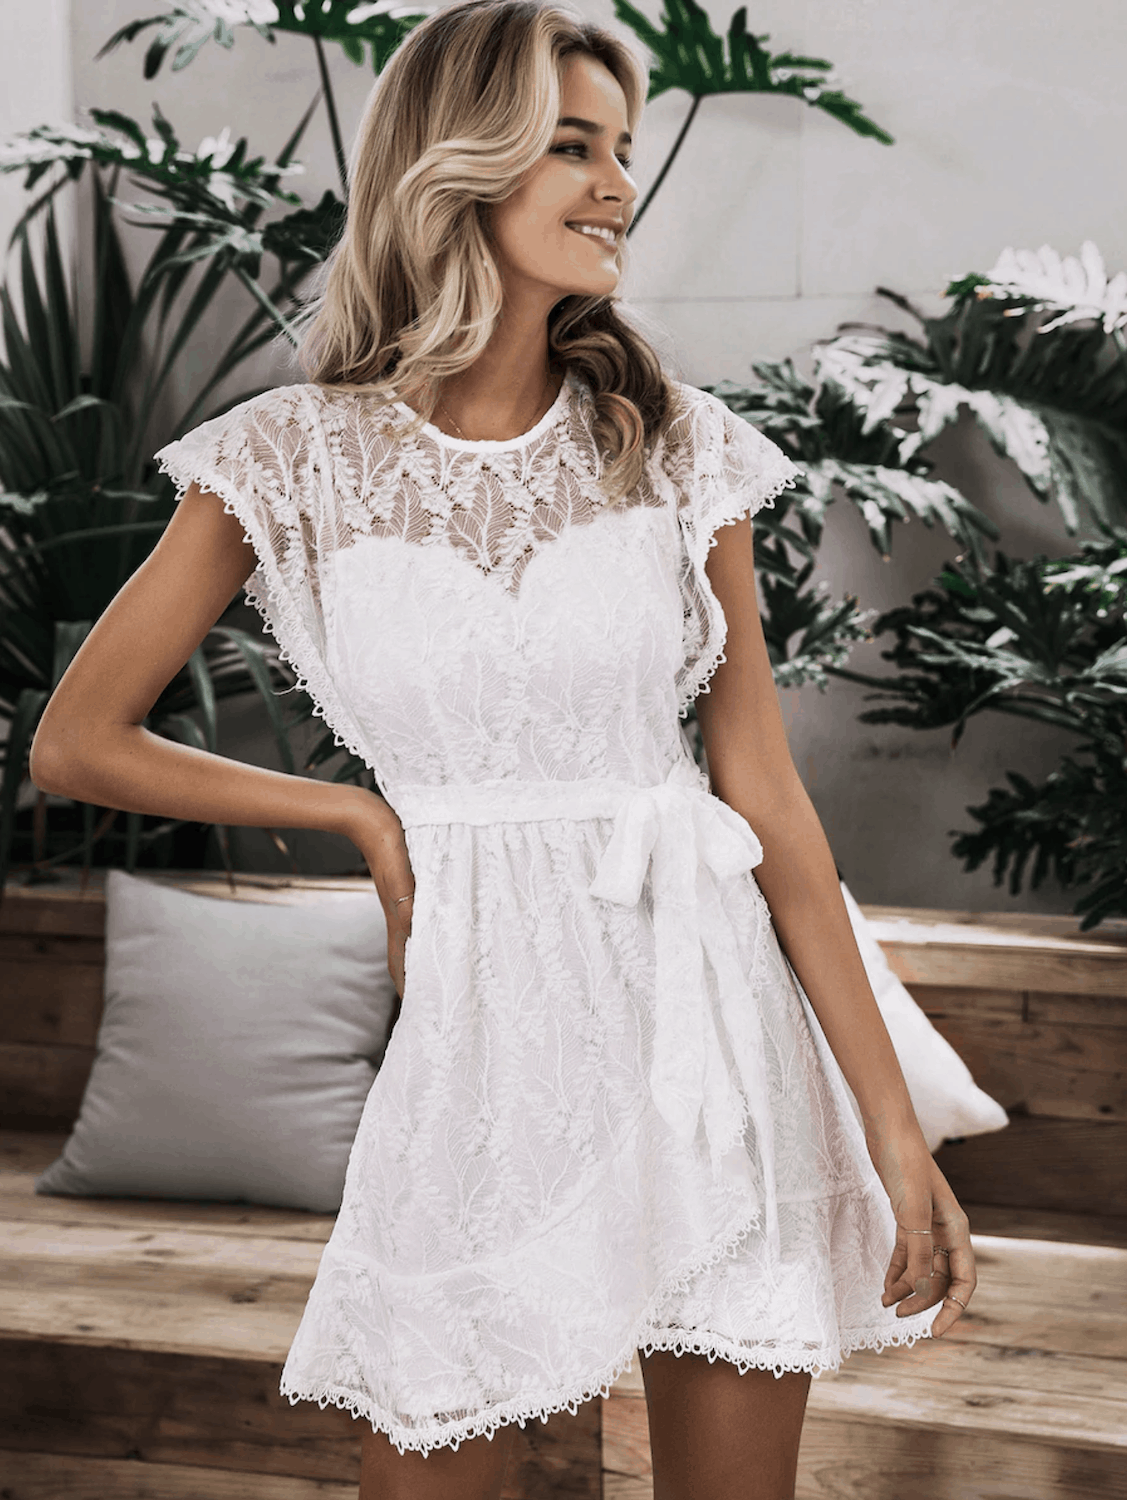 Bridal Shower Dresses for the Bride Simplee Zip Back Ruffle Hem Wrap Belted Lace Dress